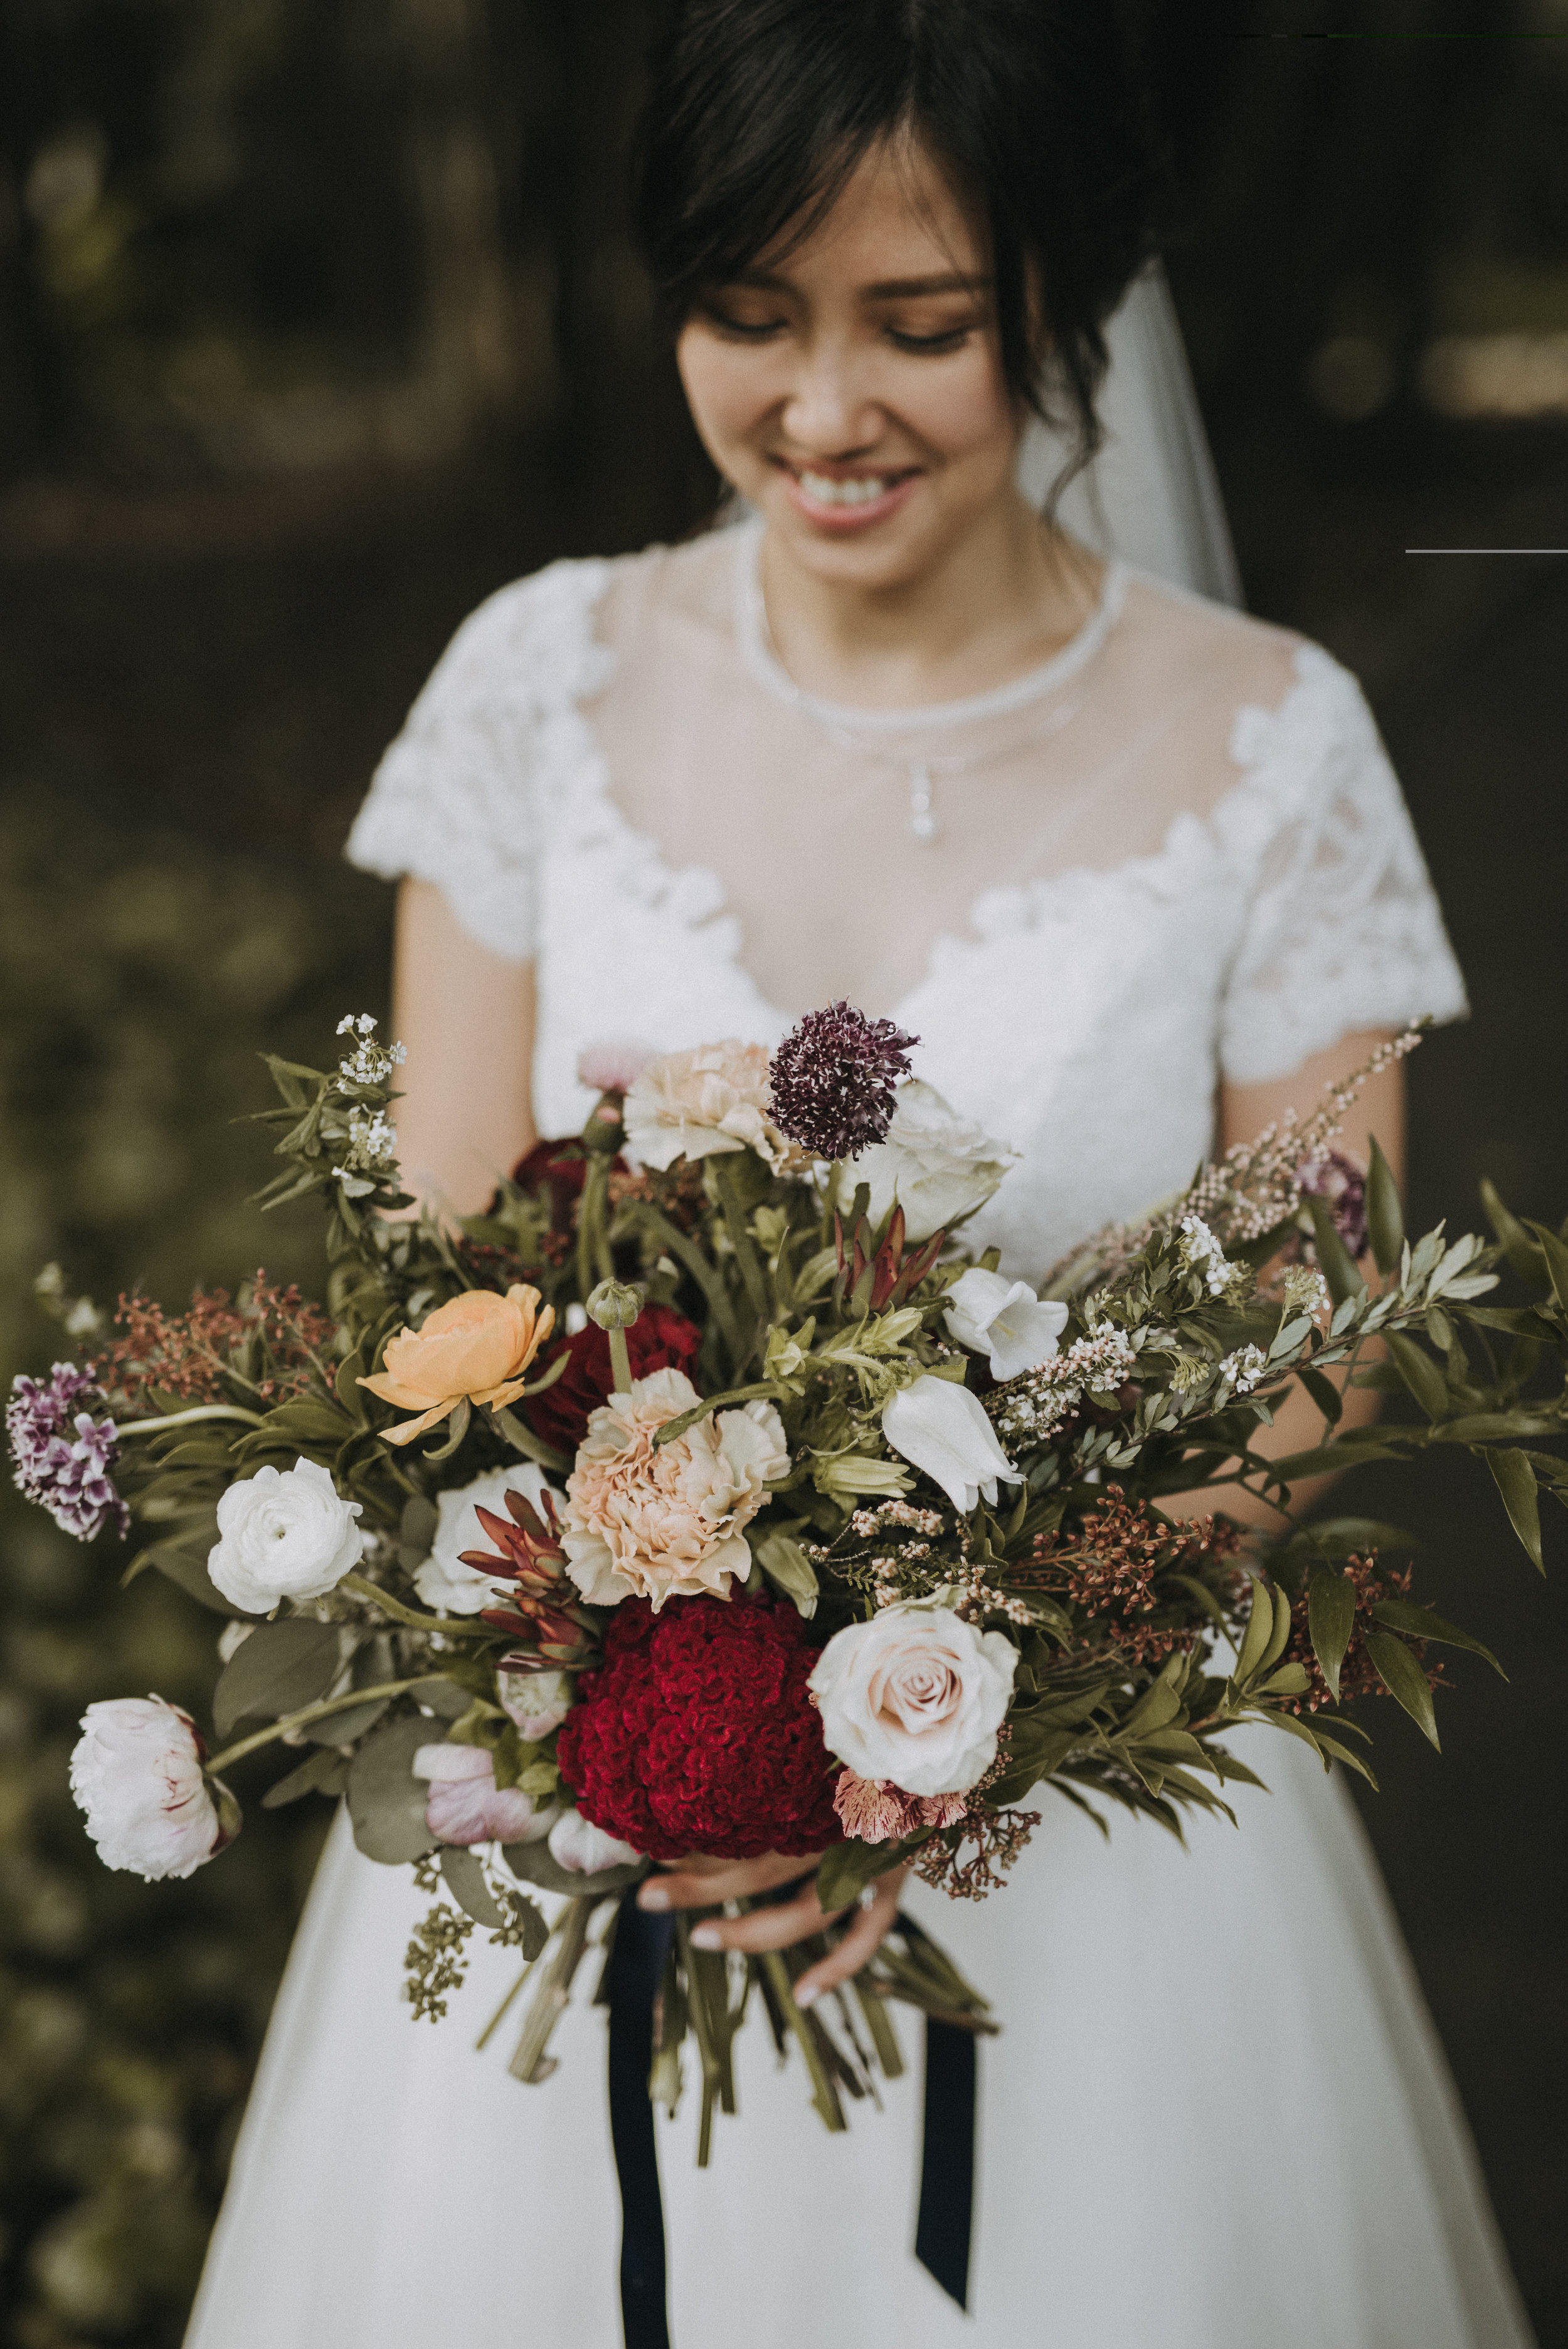 SC is always on the look out to try something new. To describe her everyday style -she loves minimalist design, clean lines silhouette and neutral color tones,nothing over the top. Hence when it comes to her wedding, interestingly, she was willing to explore her flowers in a stronger color palette and chose to go with a more rustic style - of burgundy red, vintage pink, dark purple and overflowing green foliages. A palette that we were pretty excited to try out and a design that we could go crazy with. We love having the freedom to do freestyles.  Our chosen flowers for her - Peonies, Canpanula, Ranunculus, Celosia, Spirea, Scabiosa, Sandy Rose, Dutch Carnations.